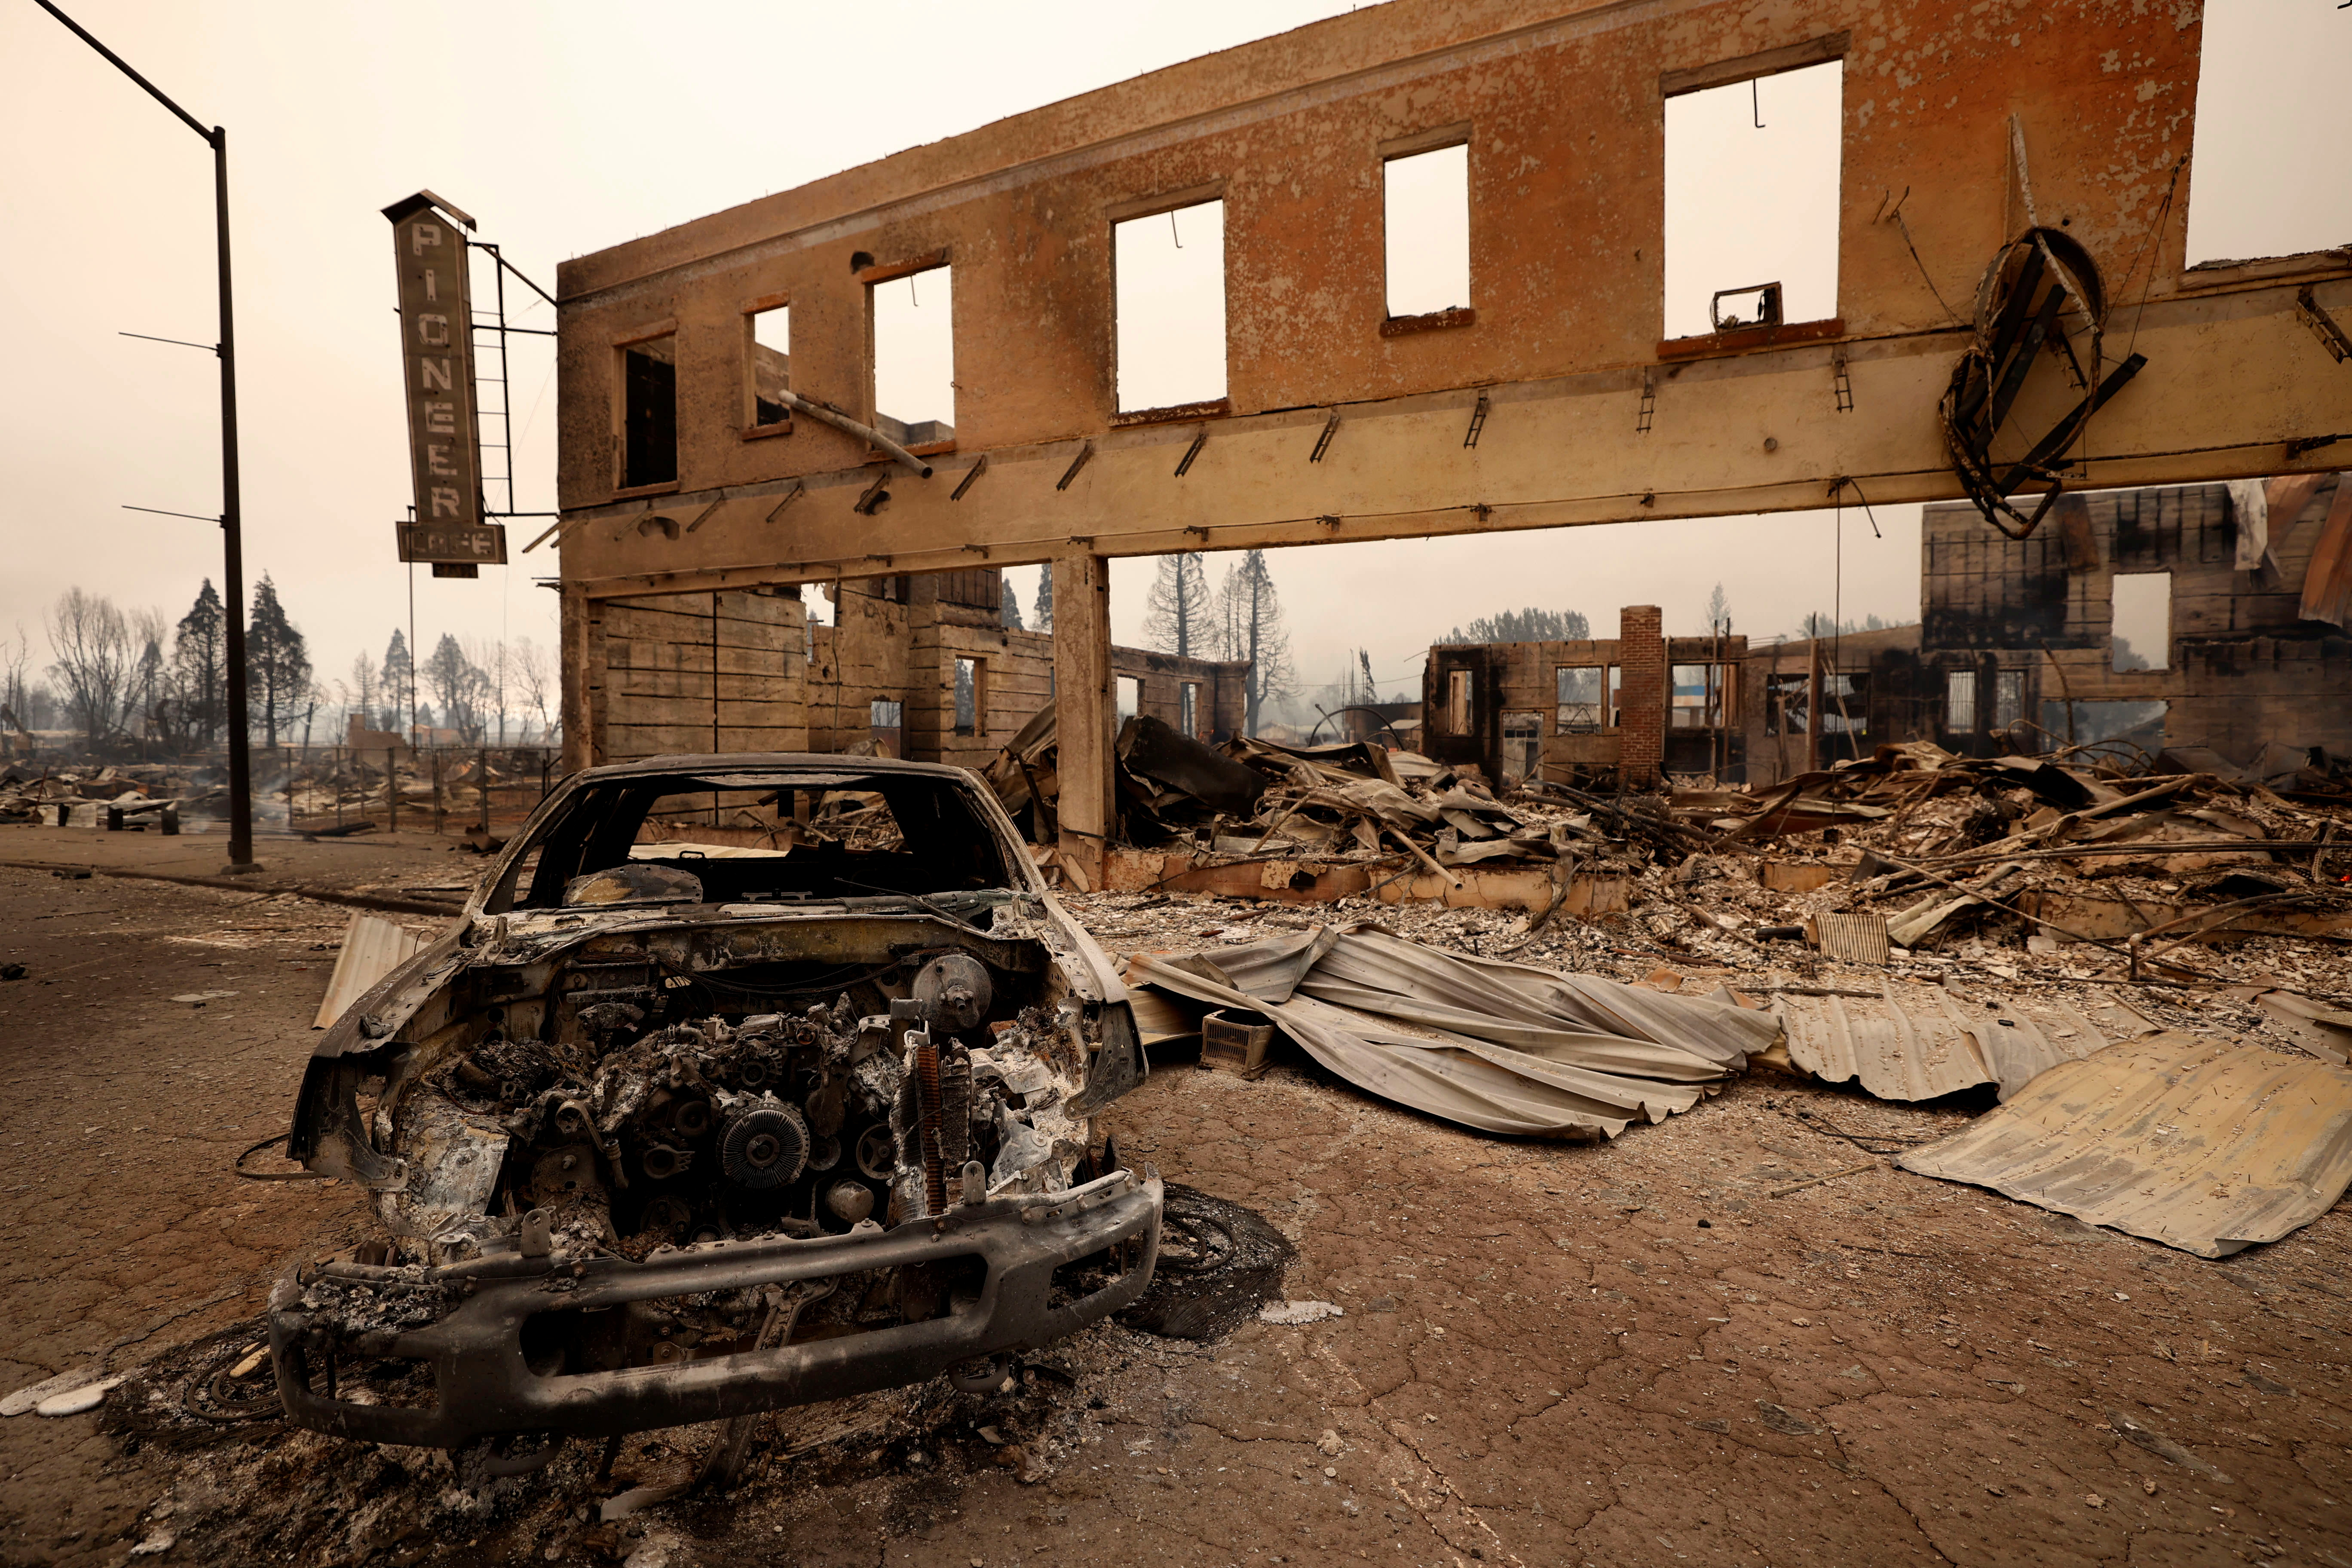 View of a burned out car and commercial building following the Dixie Fire, a wildfire that tore through the town of Greenville, California, U.S. August 5, 2021. REUTERS/Fred Greaves